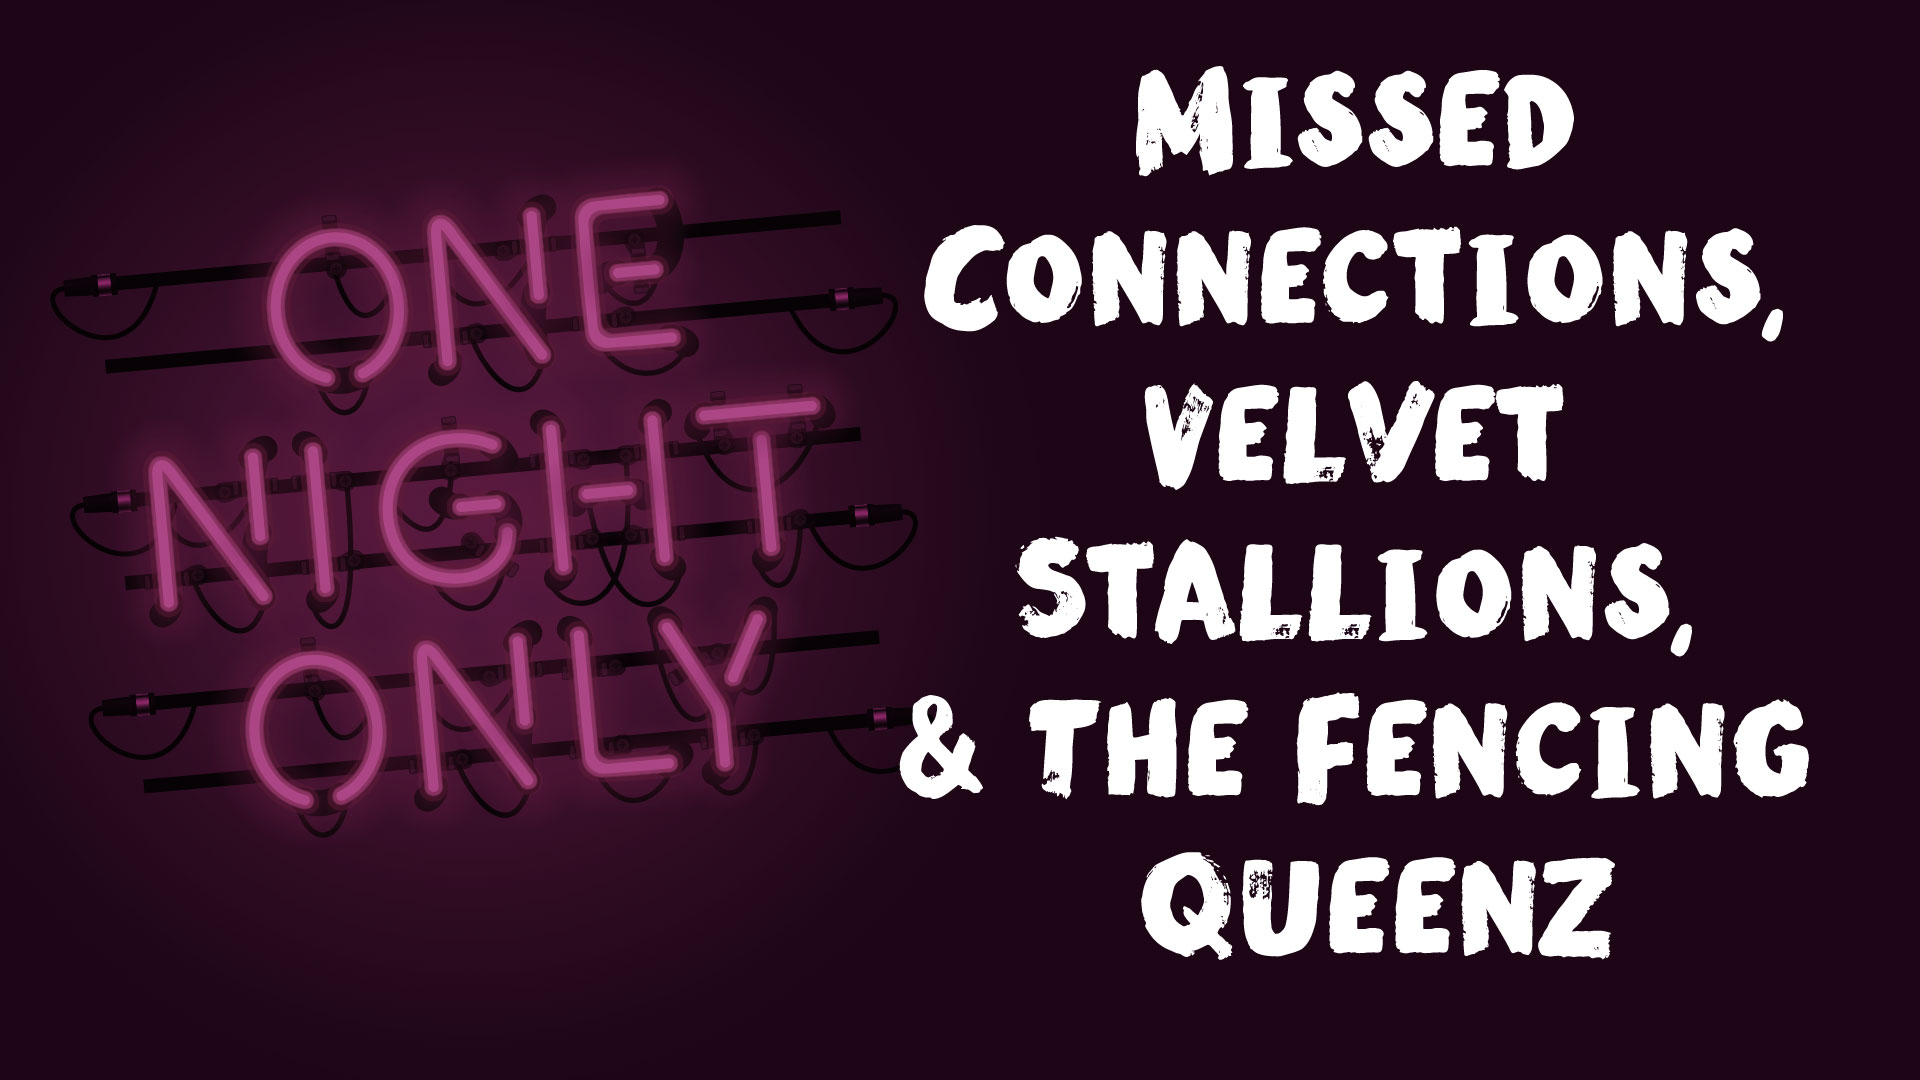 One Night Only: Missed Connections, Velvet Stallions and The Fencing Queenz